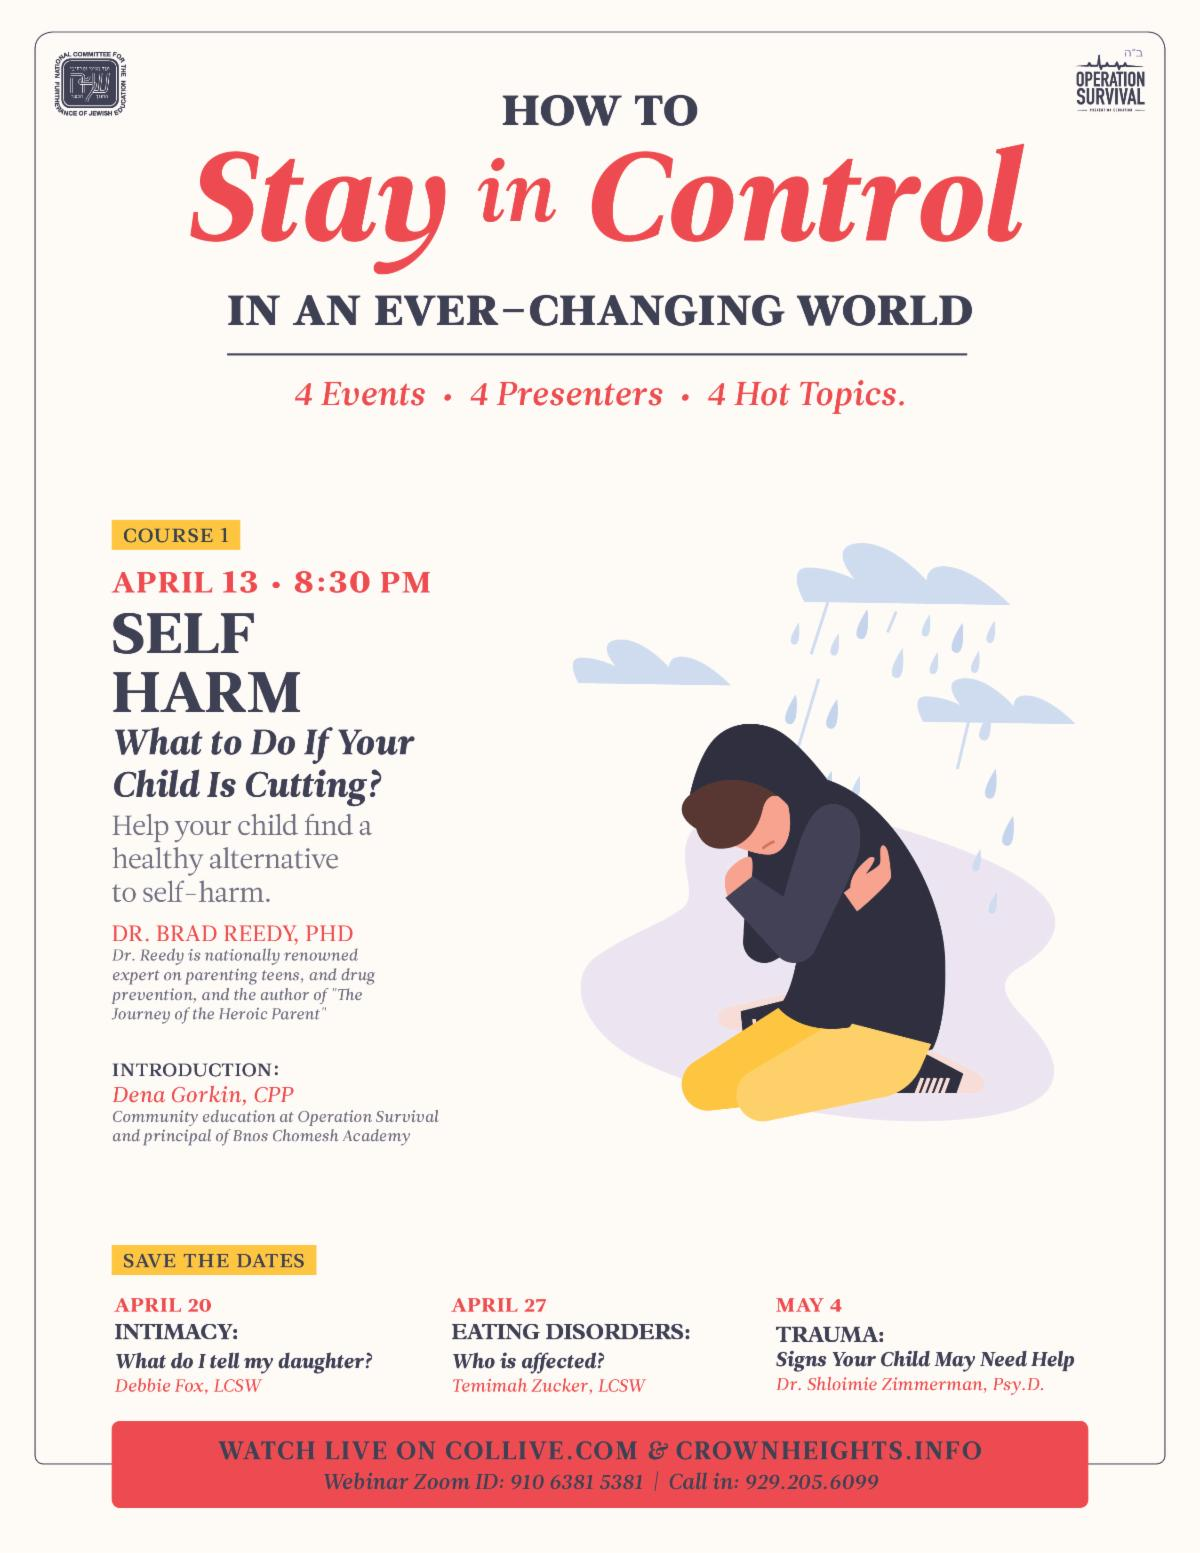 How To Stay In Control In An Ever-Changing World